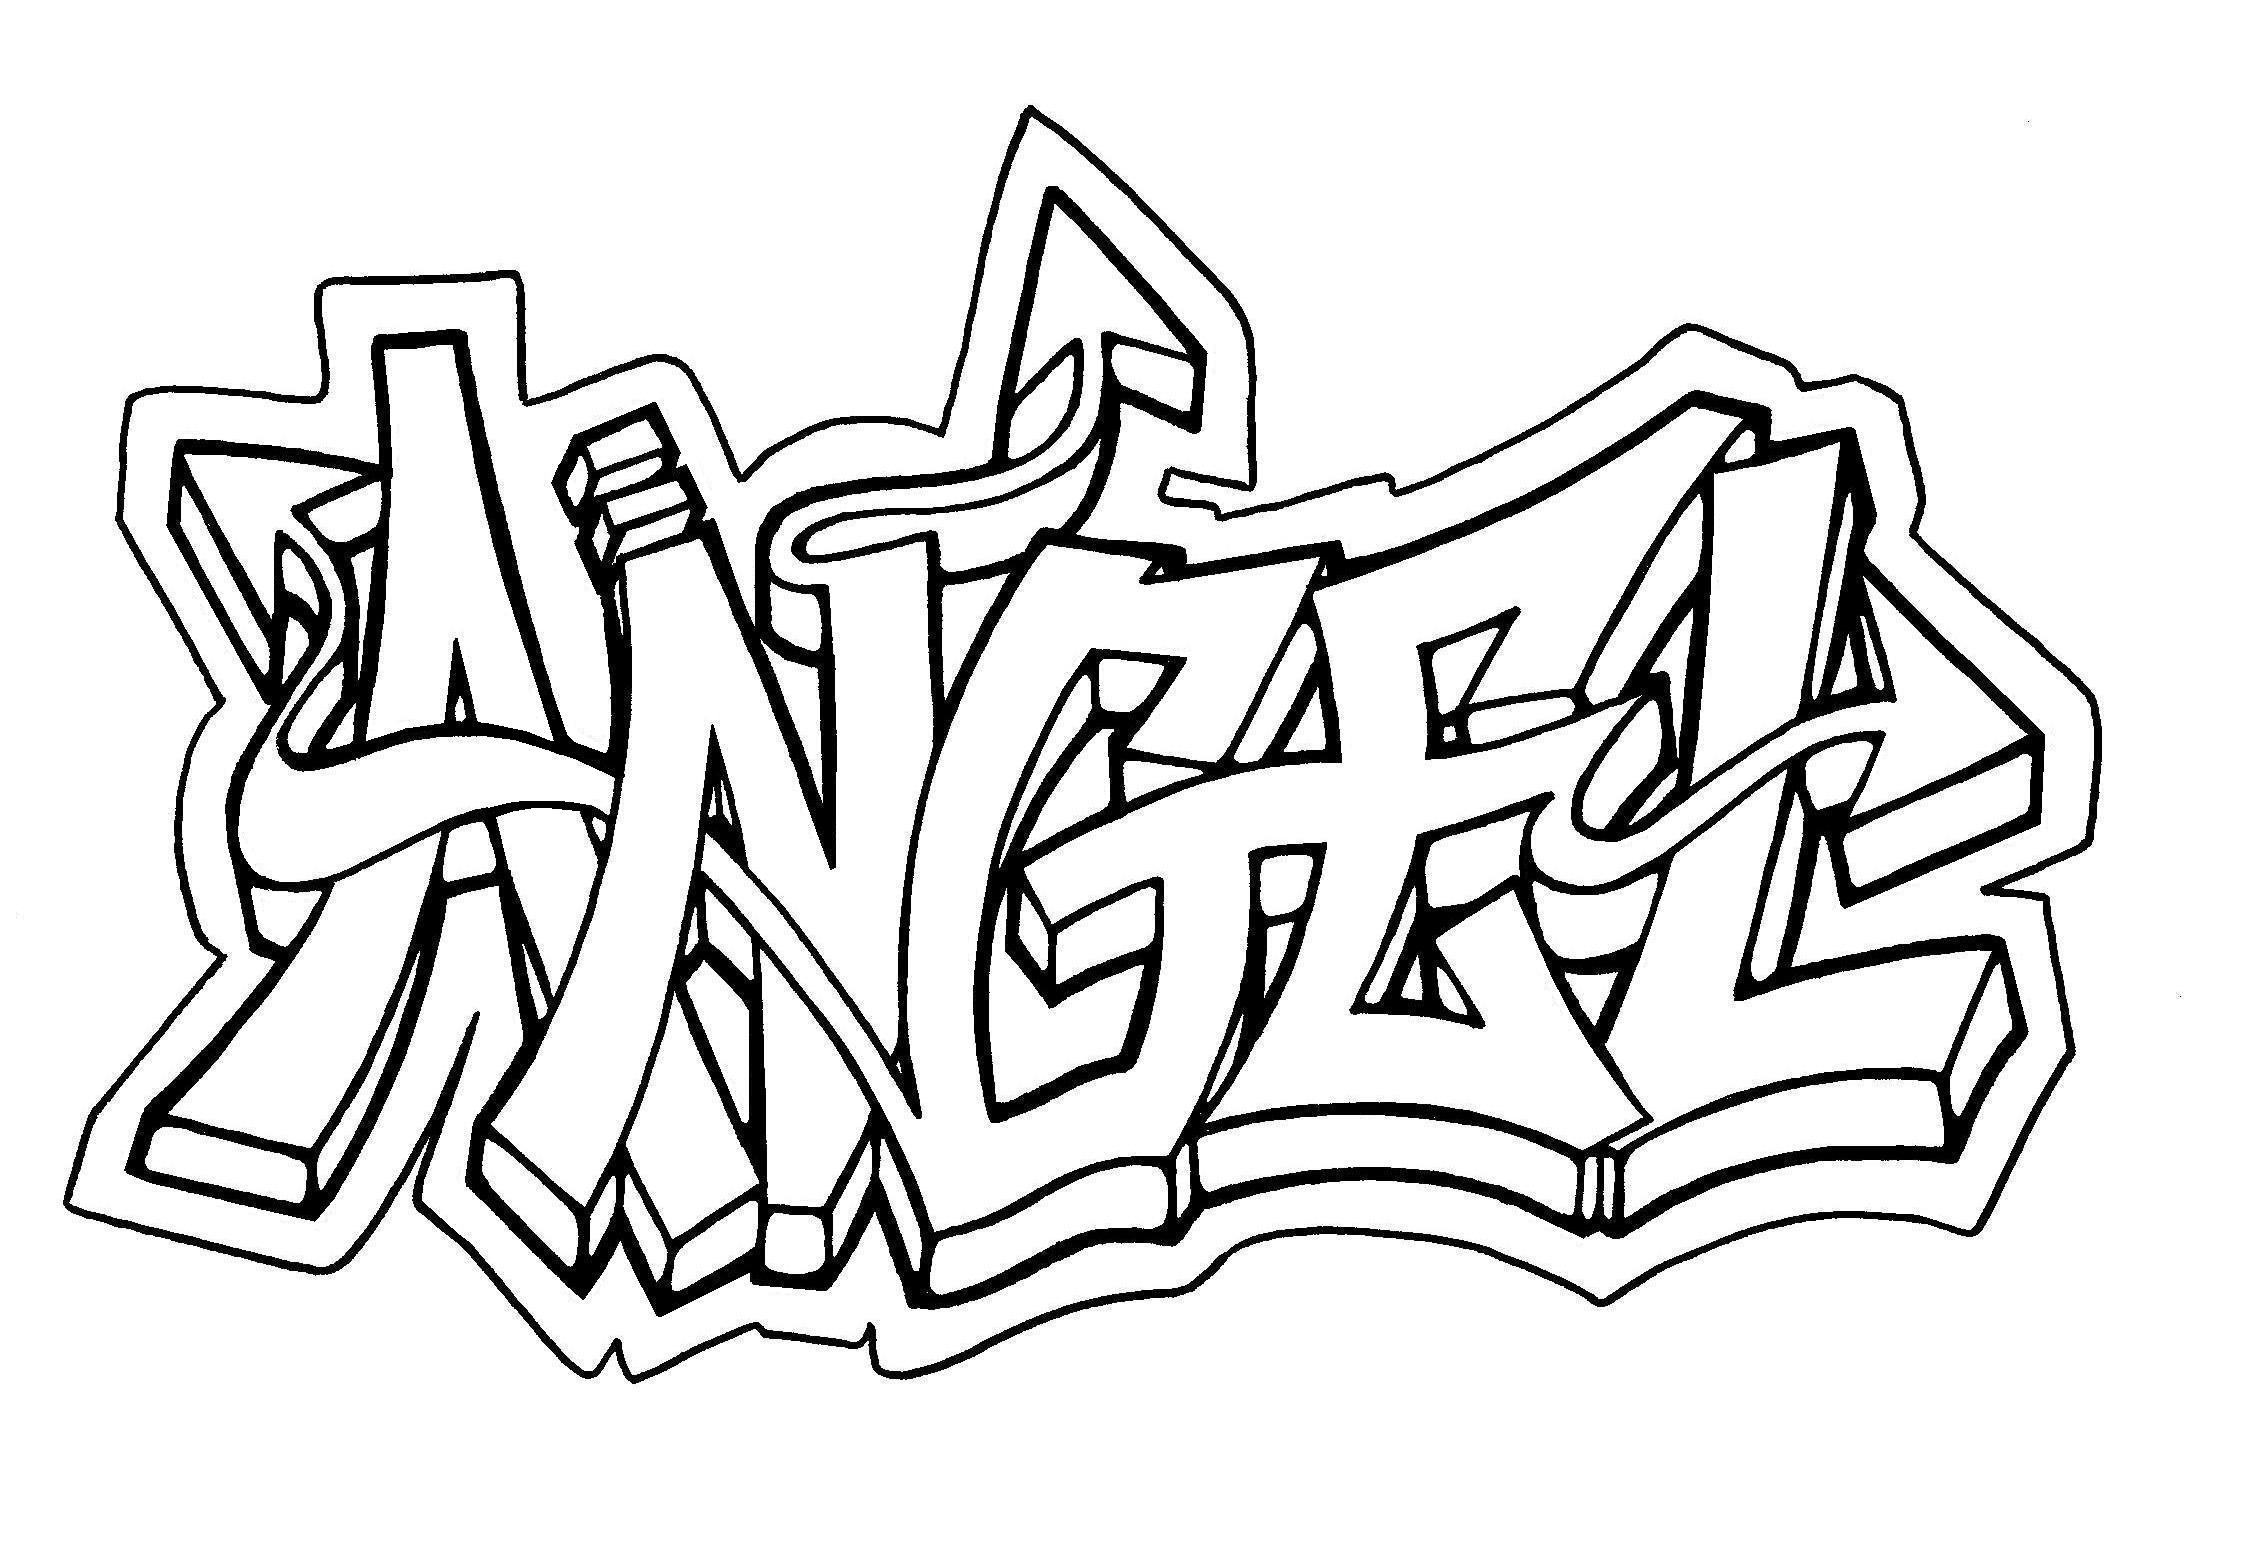 Graffiti Coloring Pages For Teens And Adults Best